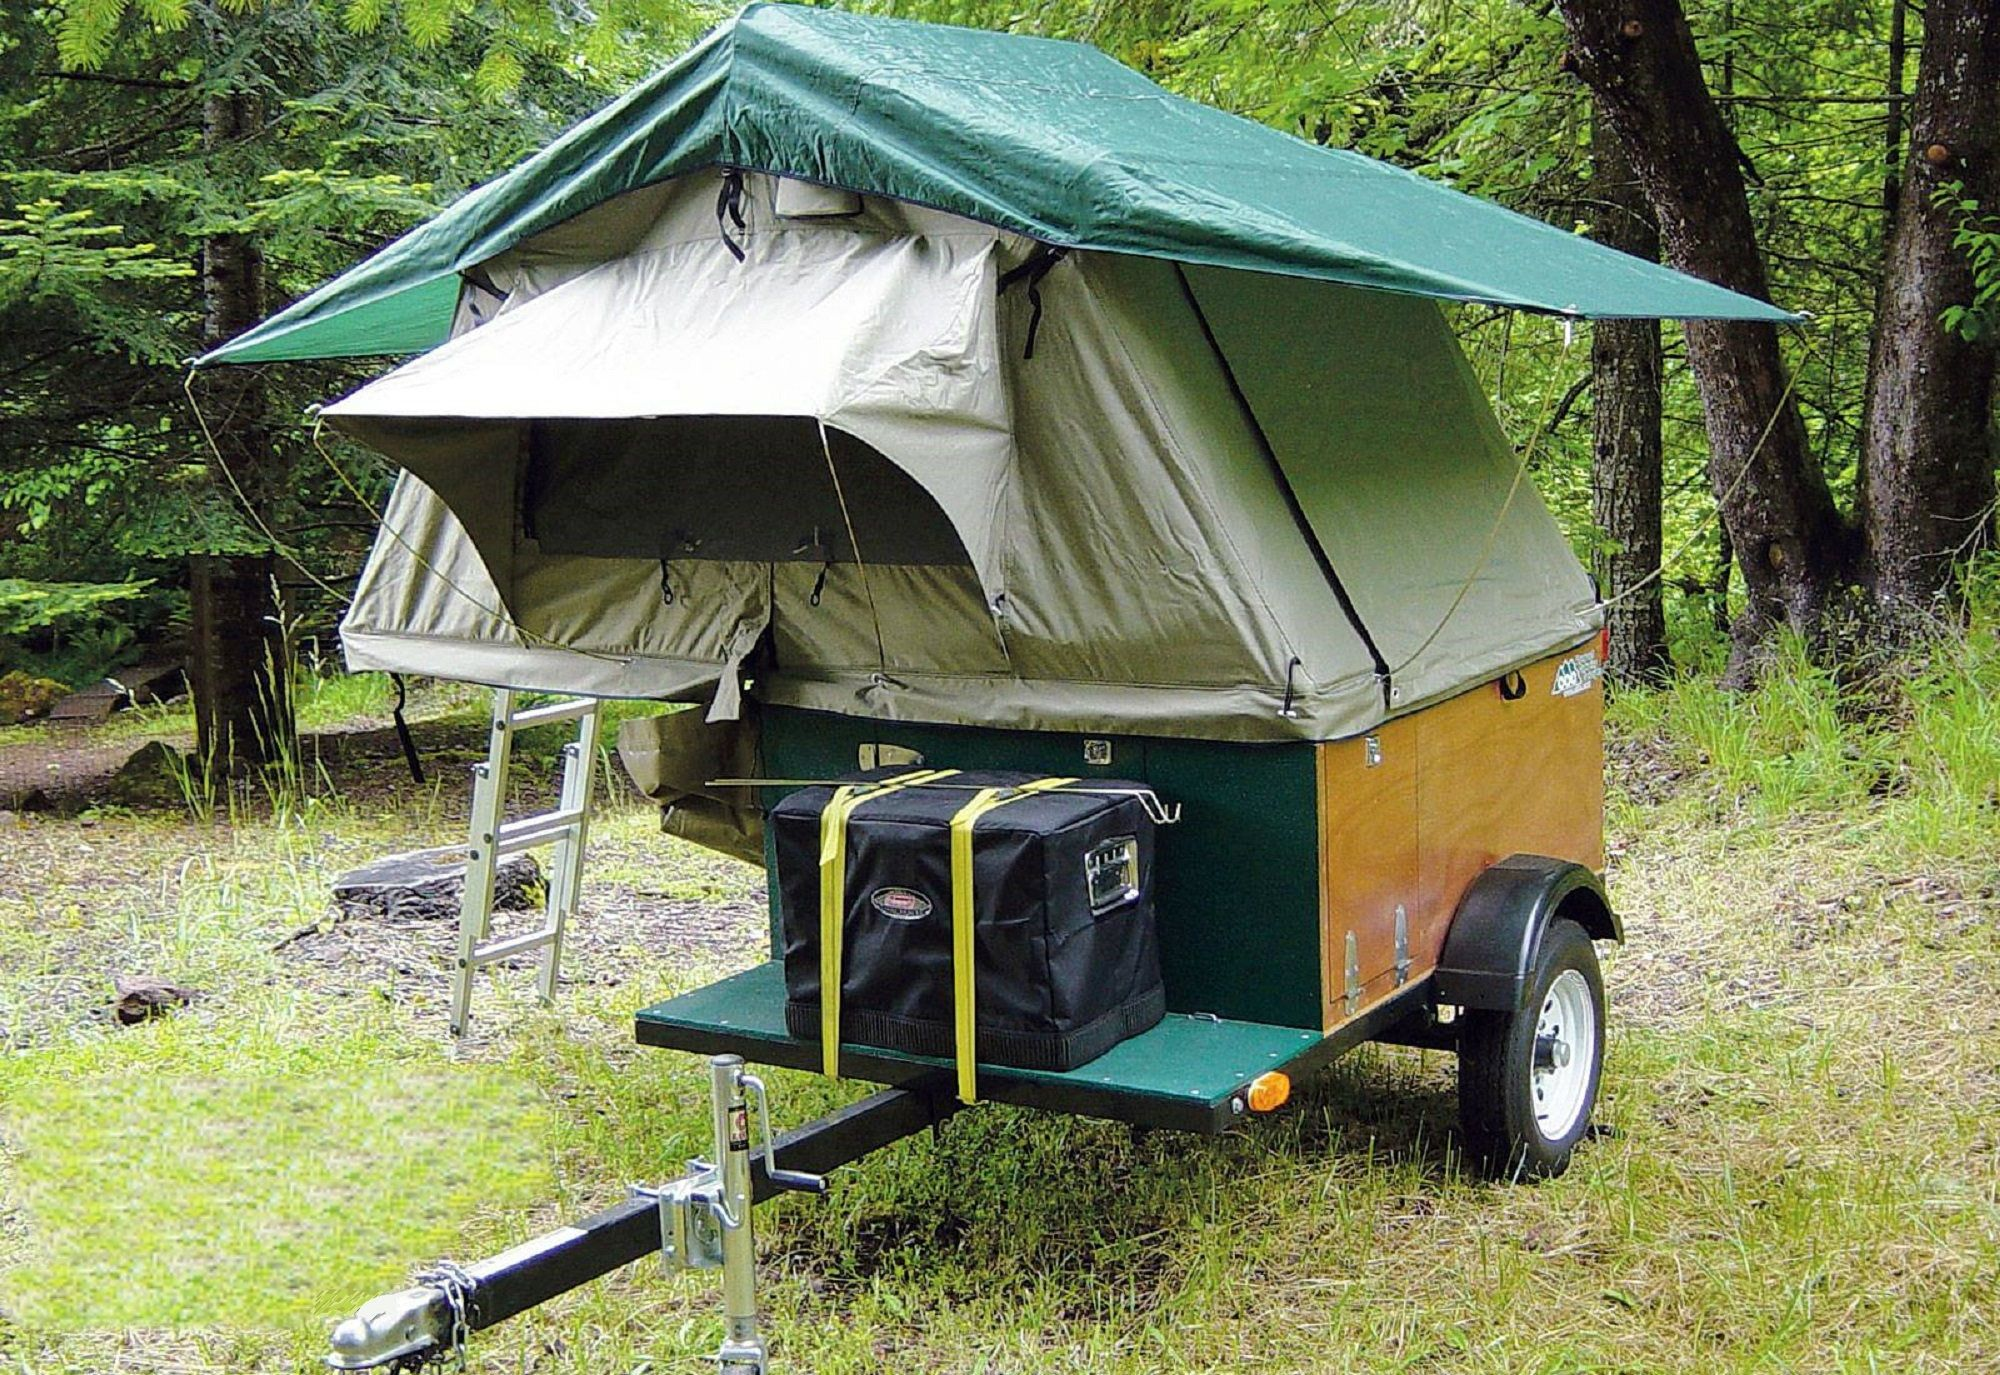 Compact Trailer Tent Camping Explorer Box.    http://compactcampingconcepts.com and/or http://rvmagonline.com/buyers-guide/0812rv-tent-camper-trailers/photo_31.html